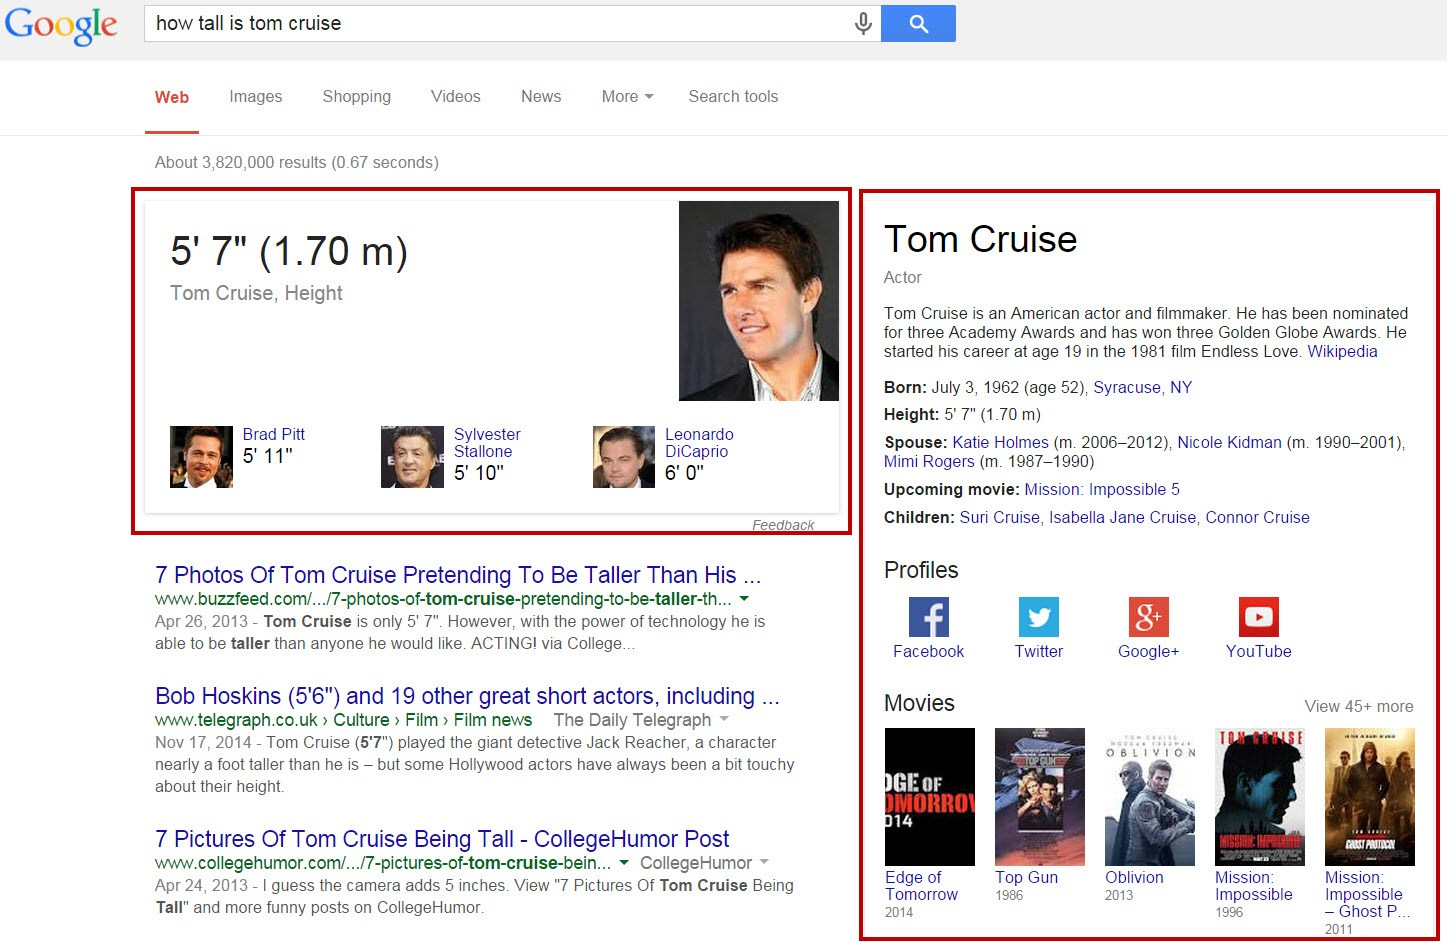 knowledge-graph-result